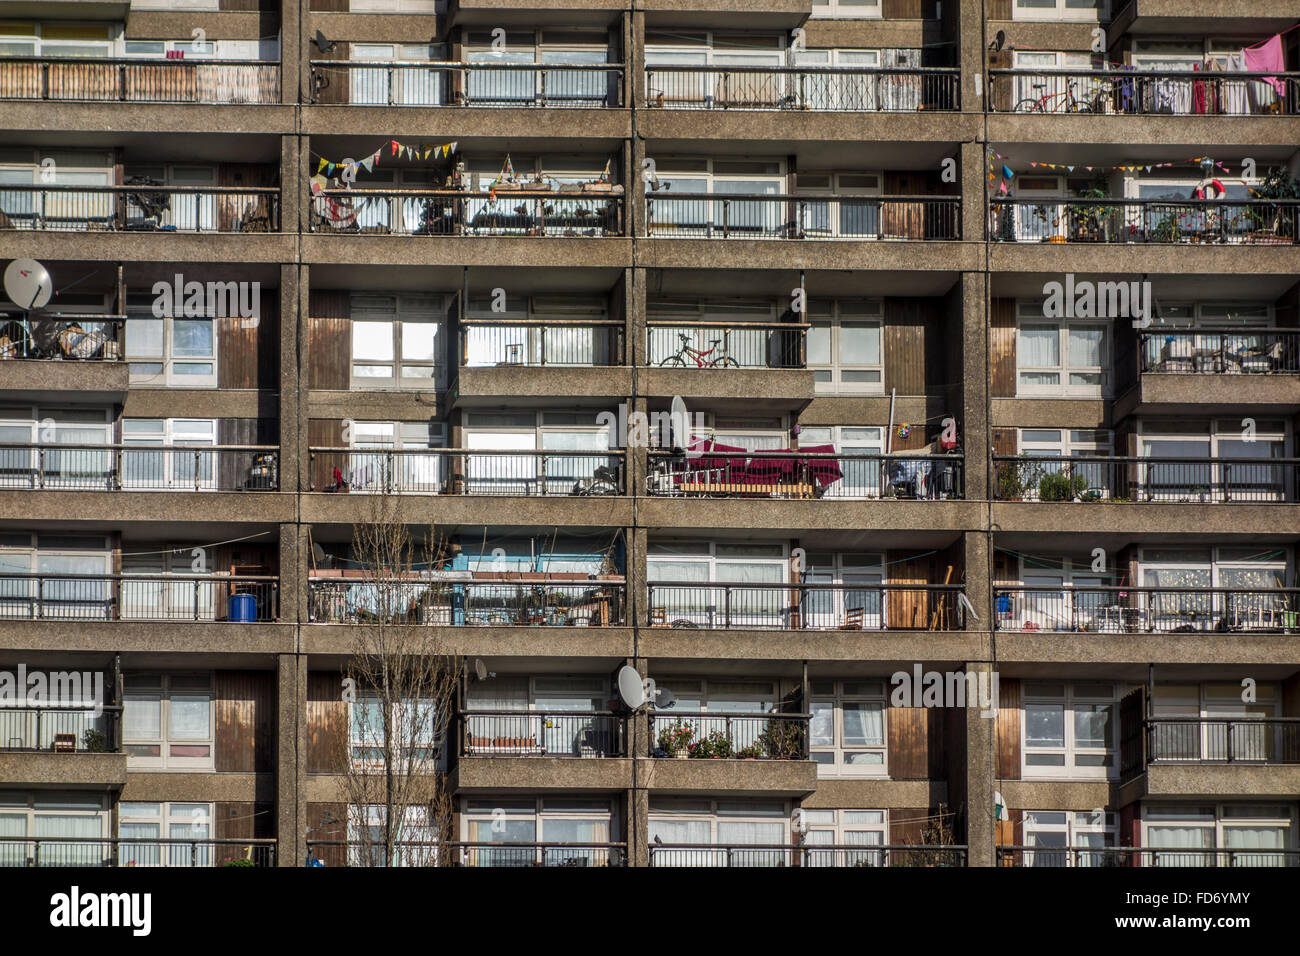 Brutalism: Close-up view of brutalist architecture of Trellick Tower, North Kensington, London, UK Stock Photo